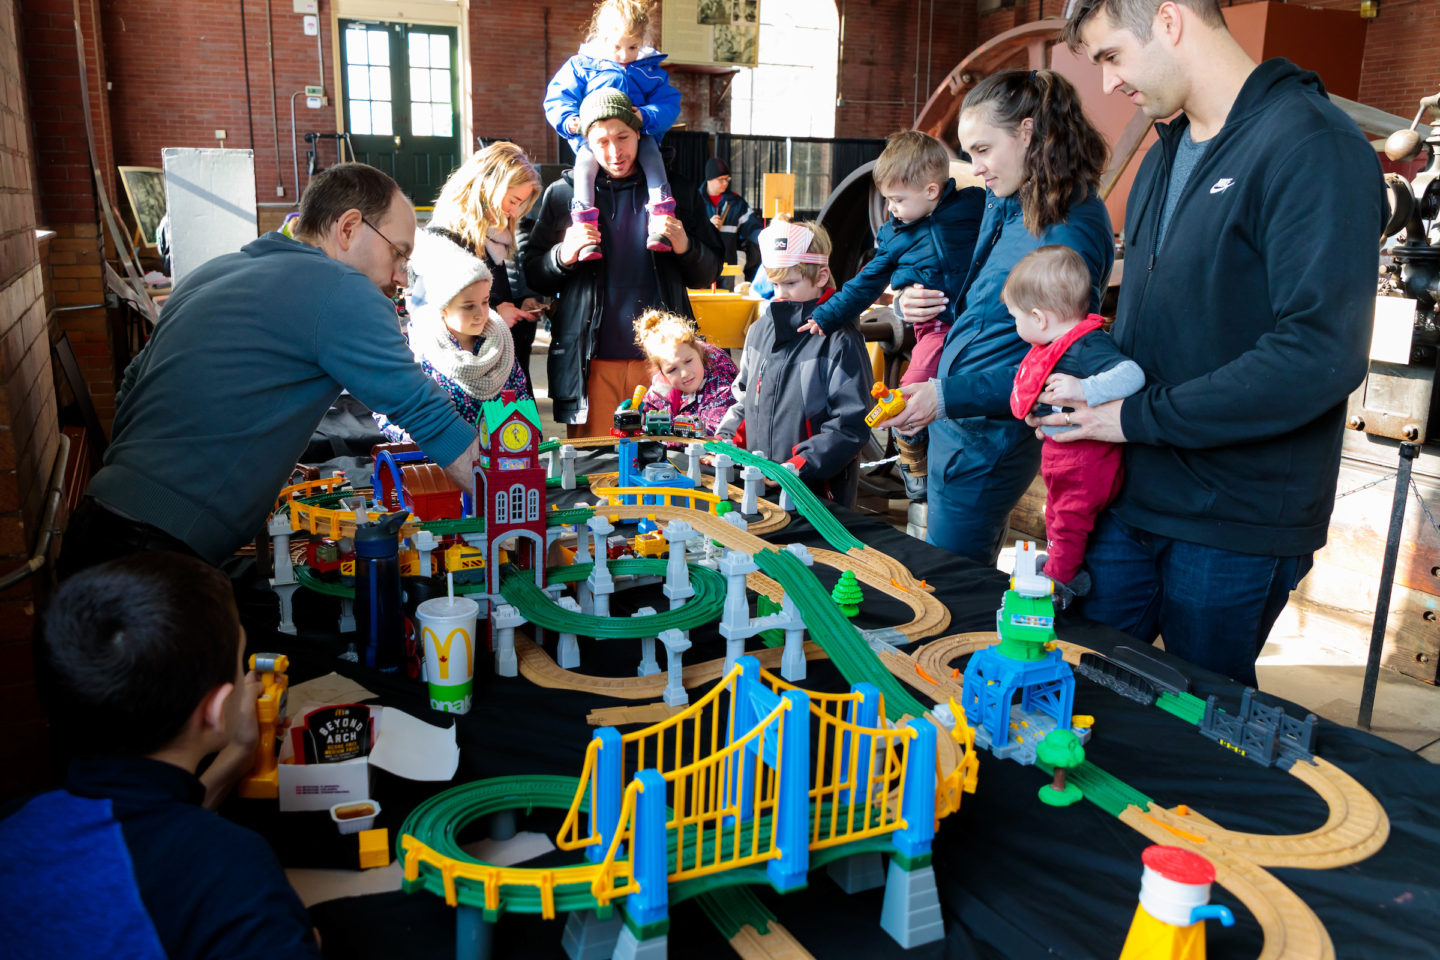 Family Day Activity: Trains, Trains and more Trains!